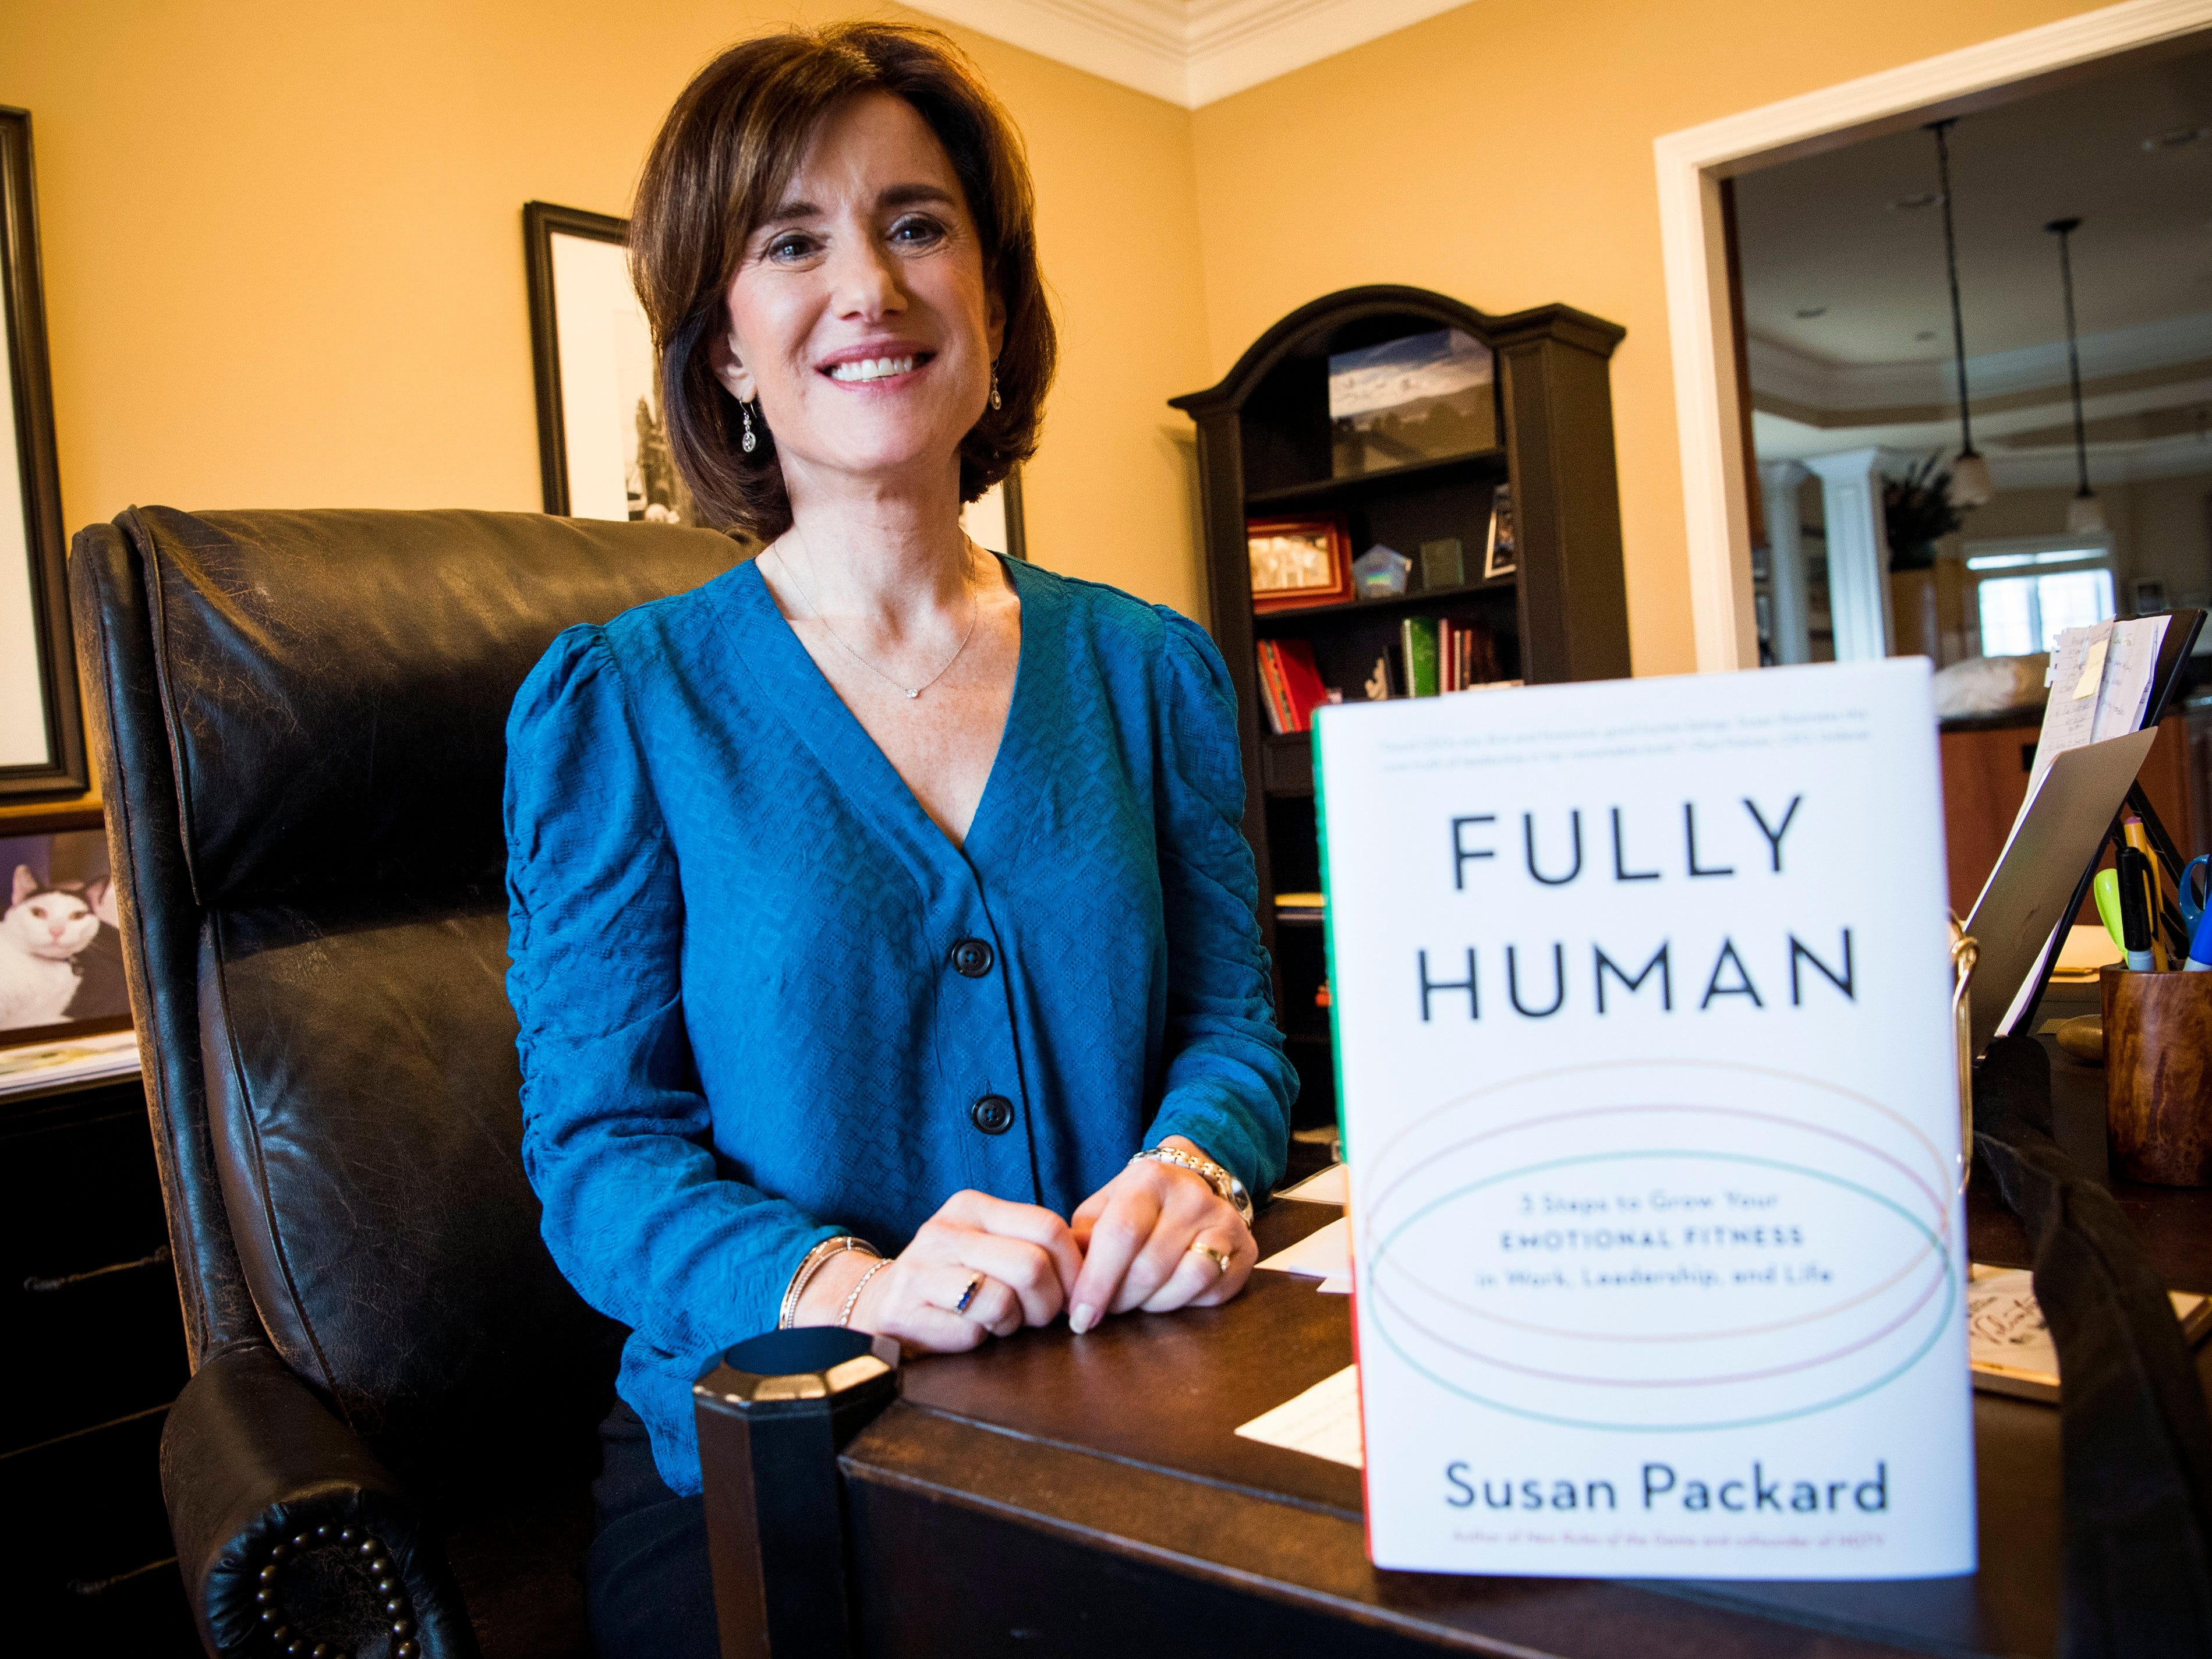 """Susan Packard, co-founder and former COO of HGTV, is the author of the book """"Fully Human,"""" which is set to be released in February 2019."""